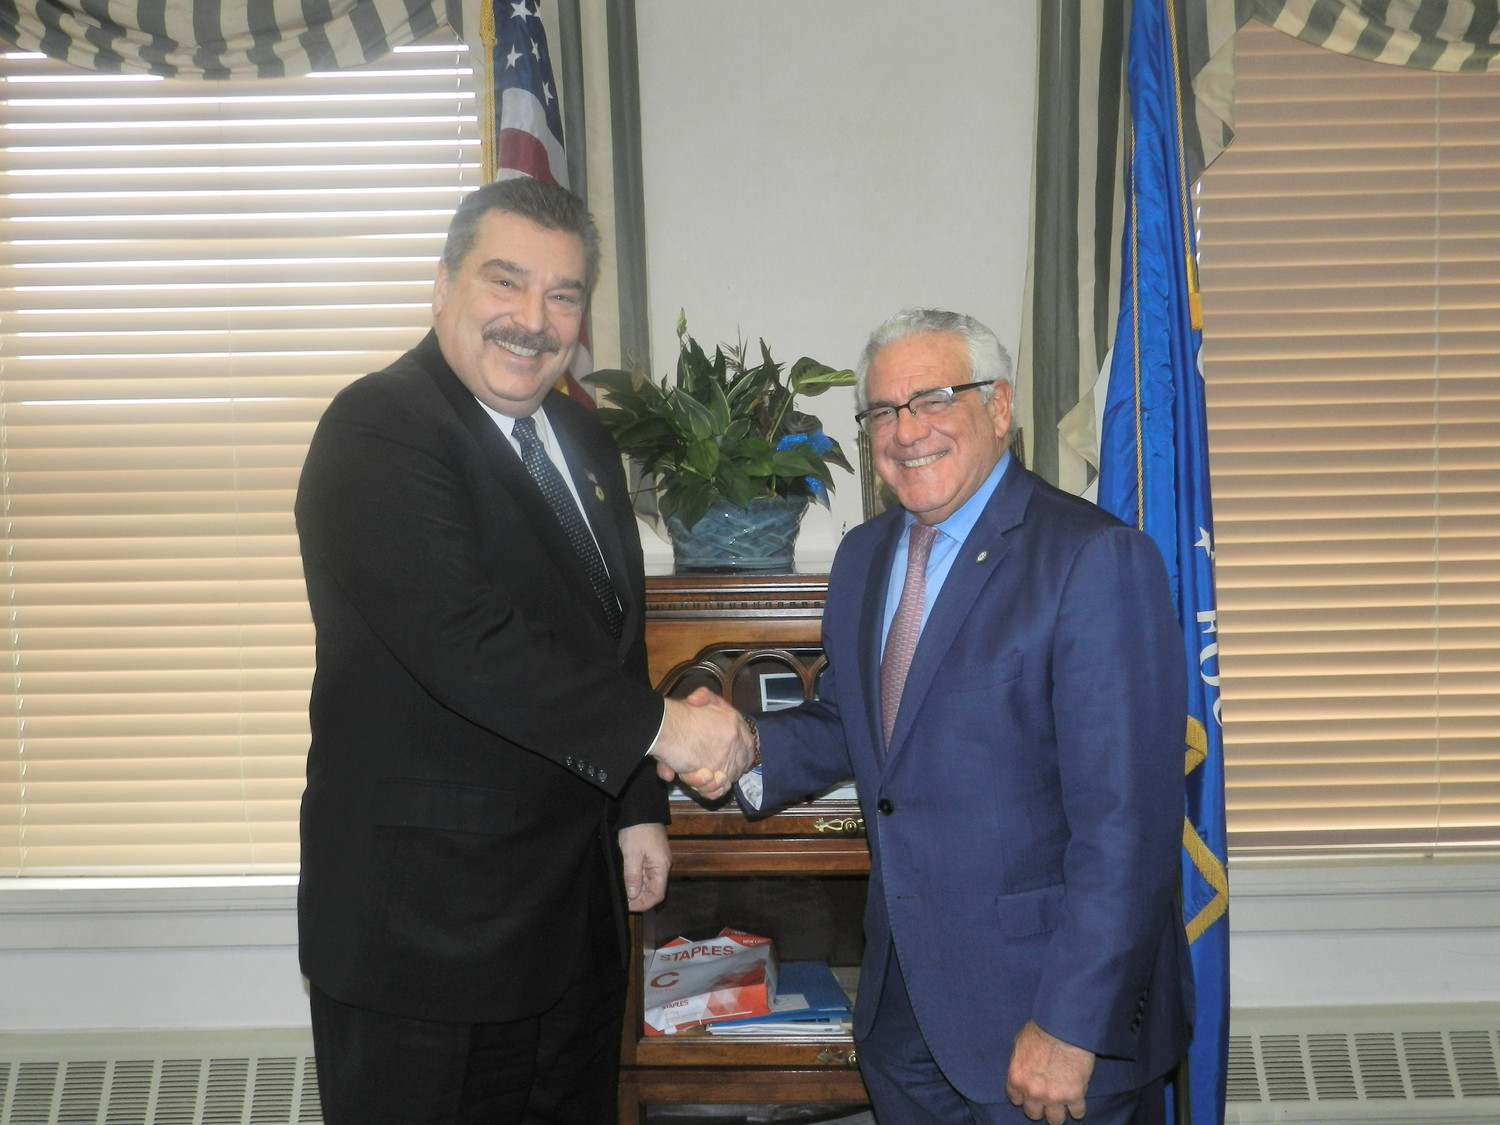 Glen Cove Mayor Tim Tenke and Sea Cliff Mayor Edward Lieberman held their first official meeting as mayors on Monday.